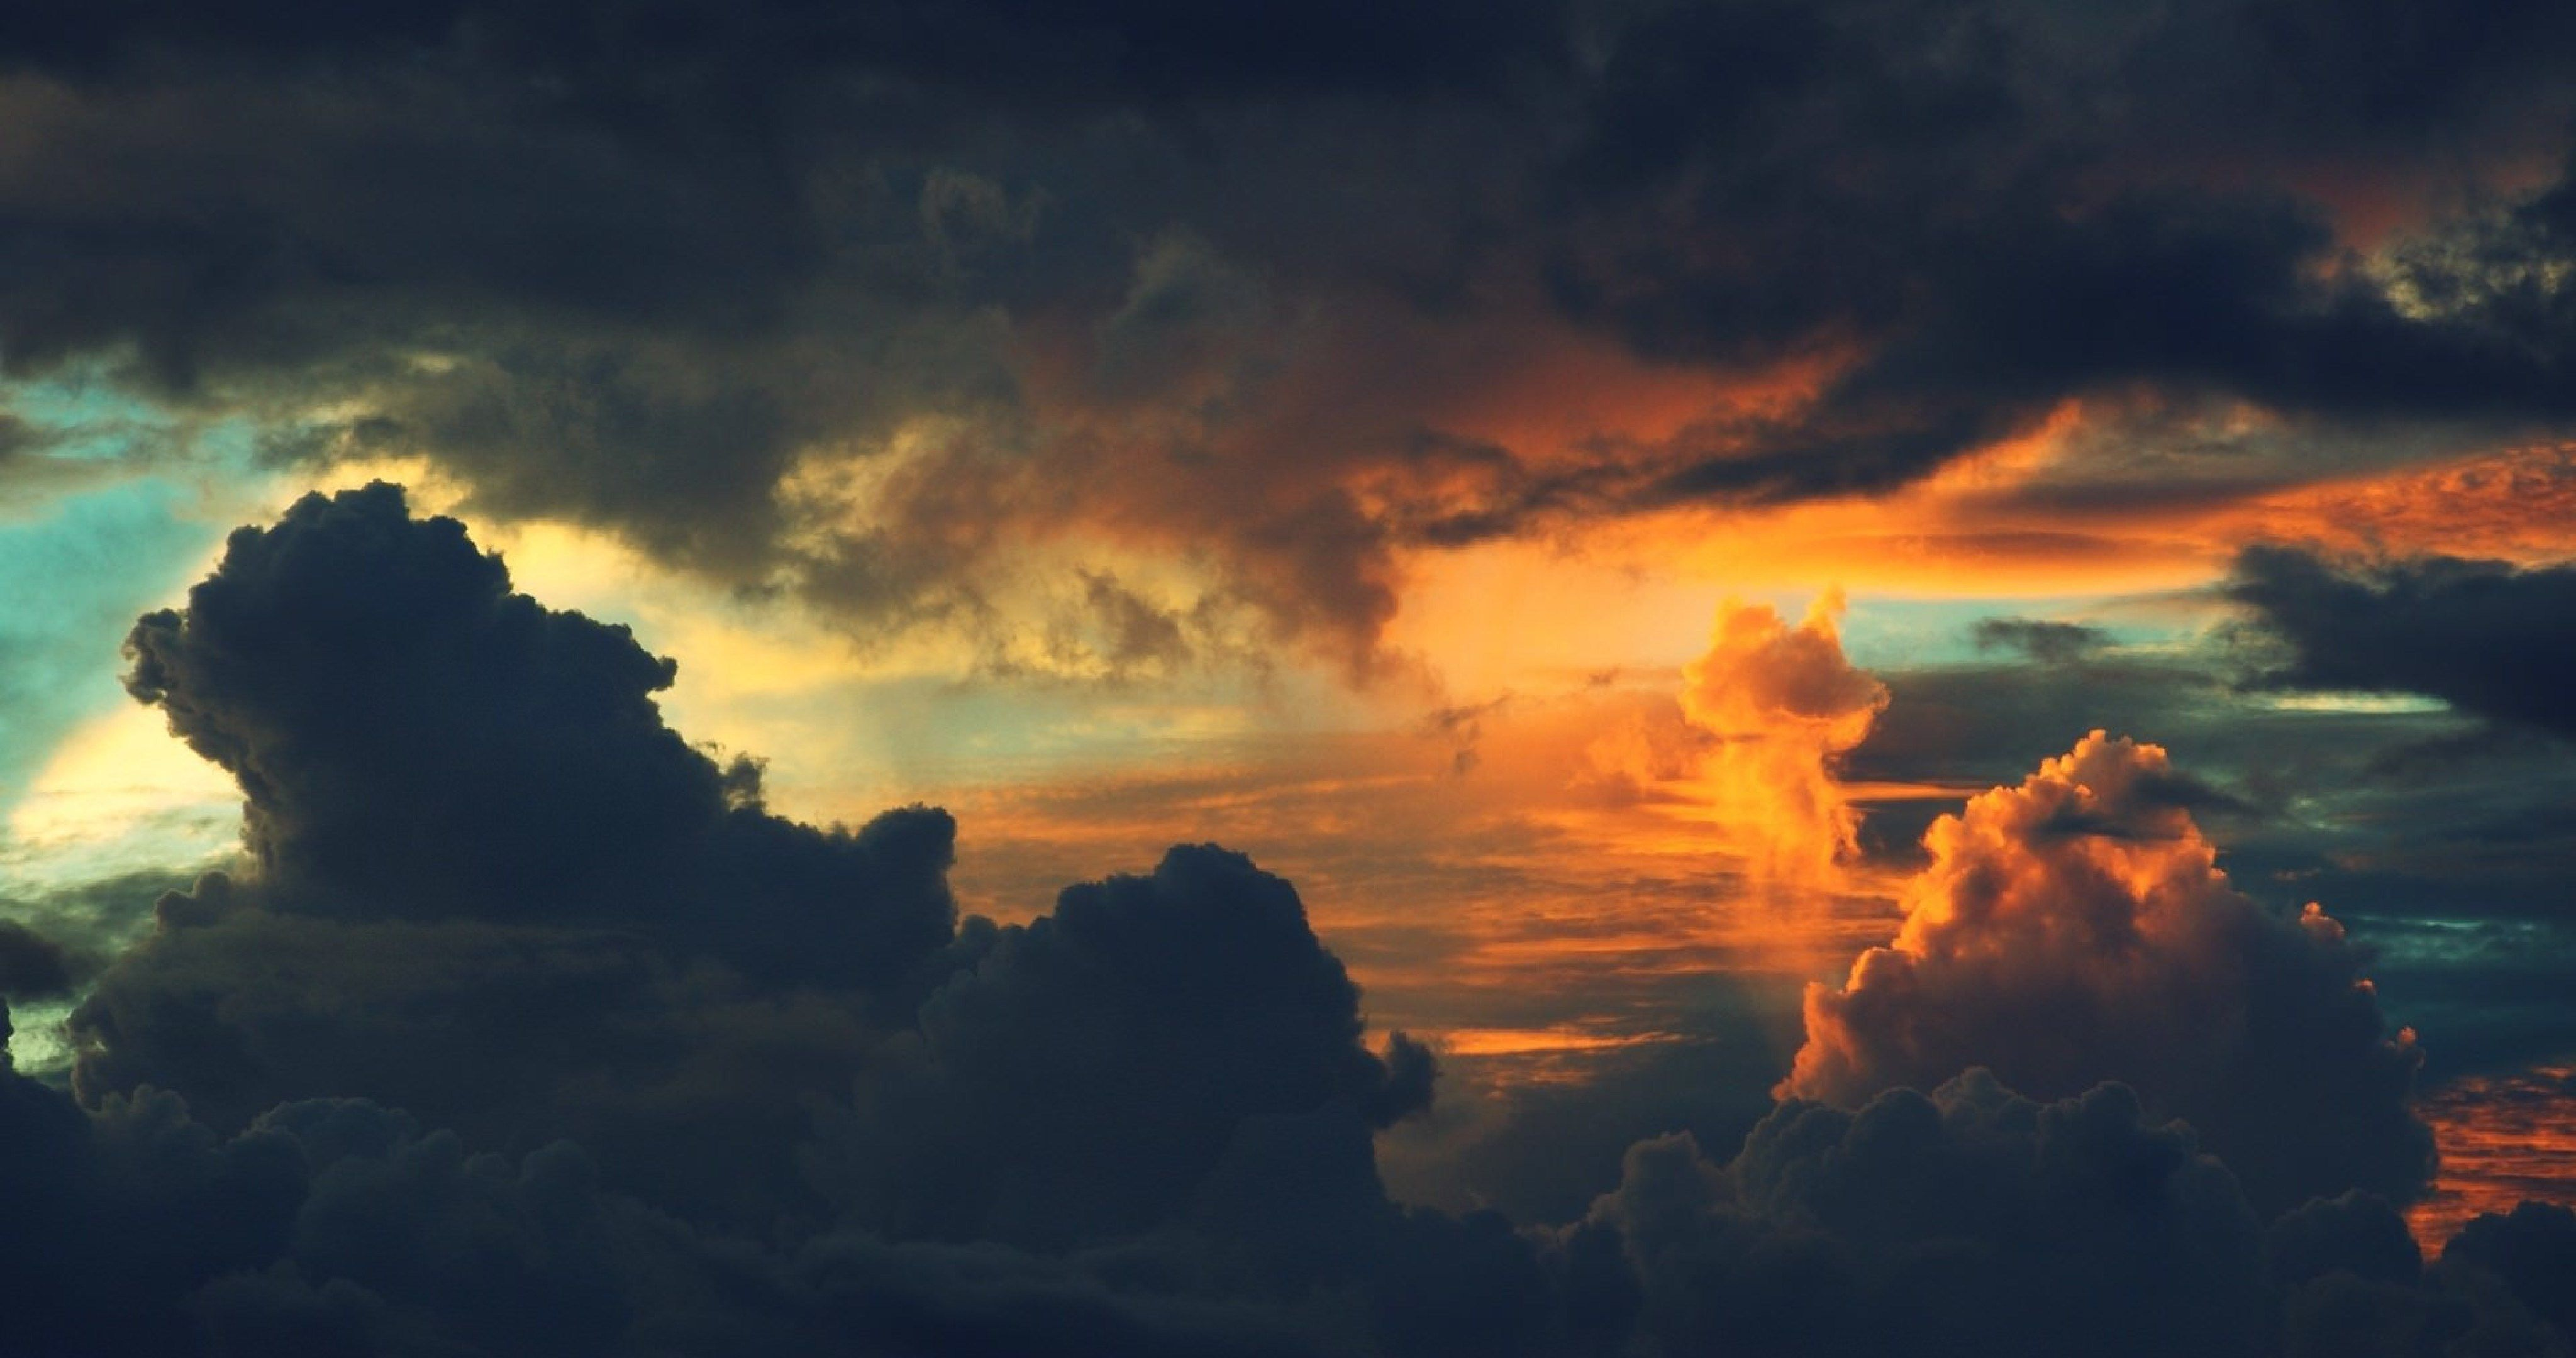 sunset clouds 4k ultra hd wallpapers » High quality walls